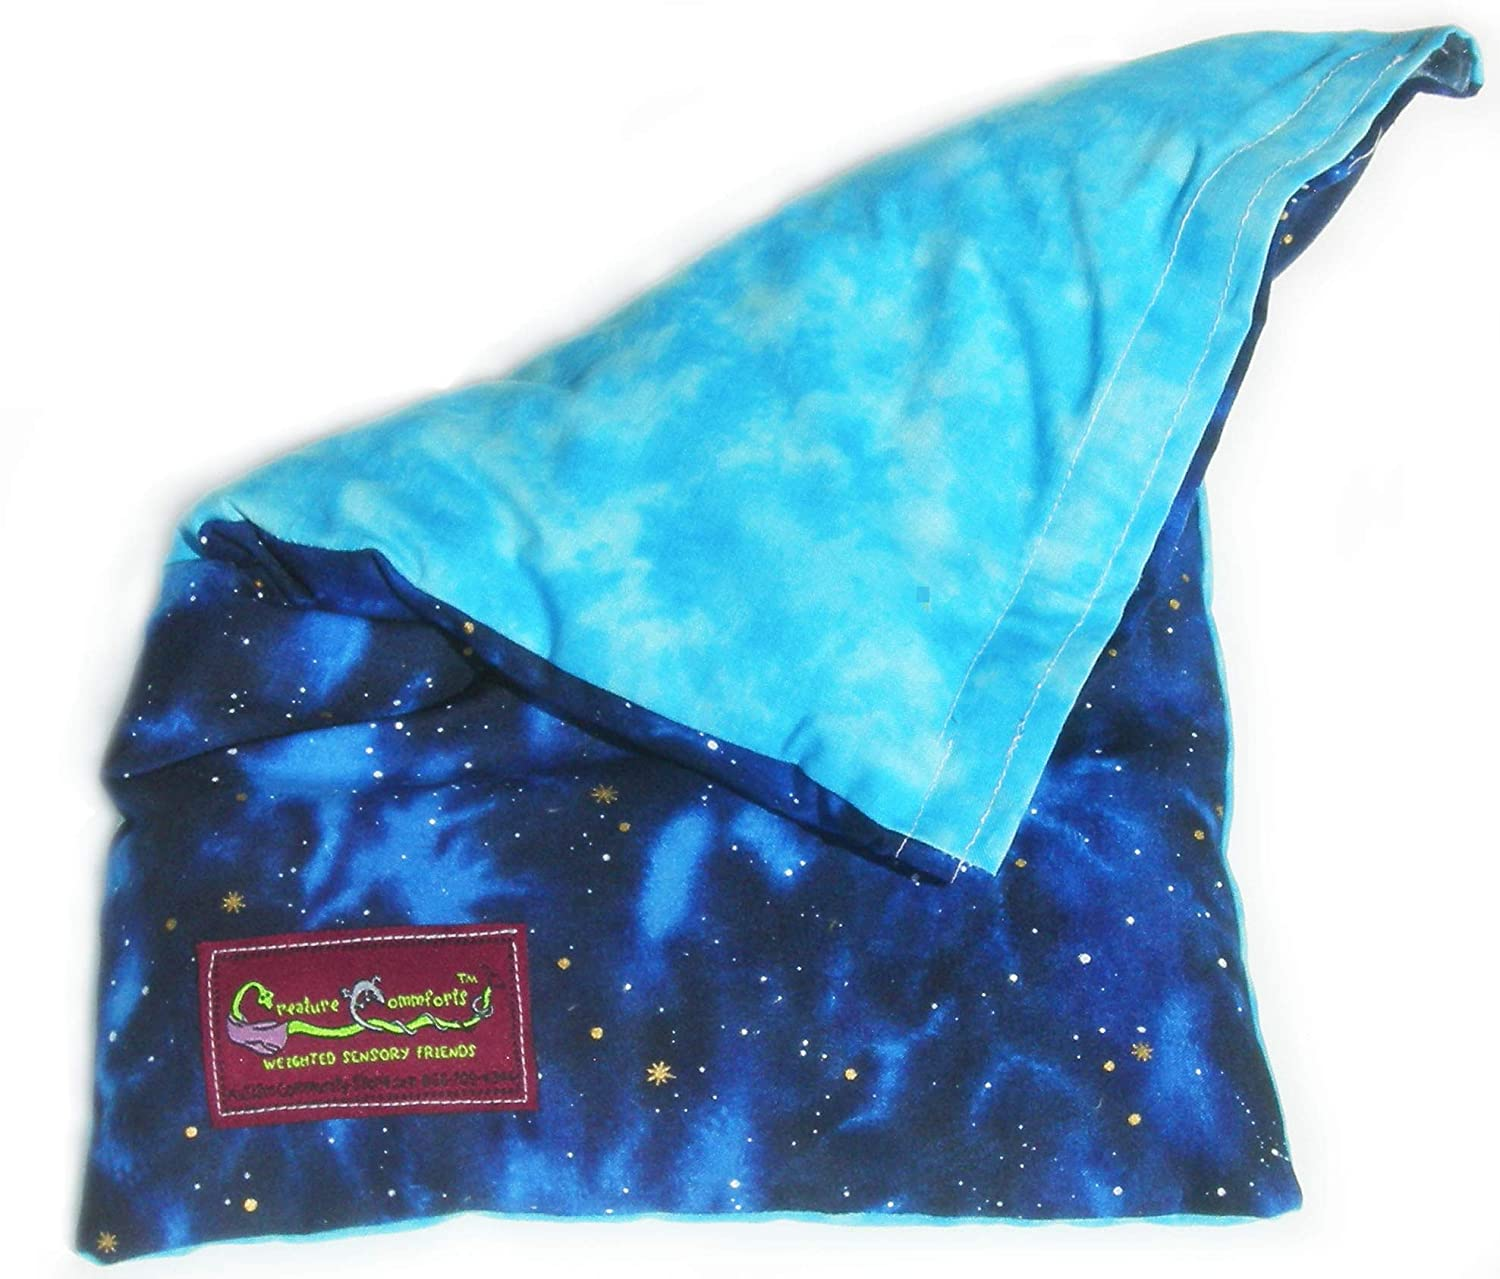 Organic Insert Night and Day Removable Cover CREATURE COMMFORTS Weighted Lap Pad 3 Pounds- for Kids Heavy Sensory Blanket Made in USA